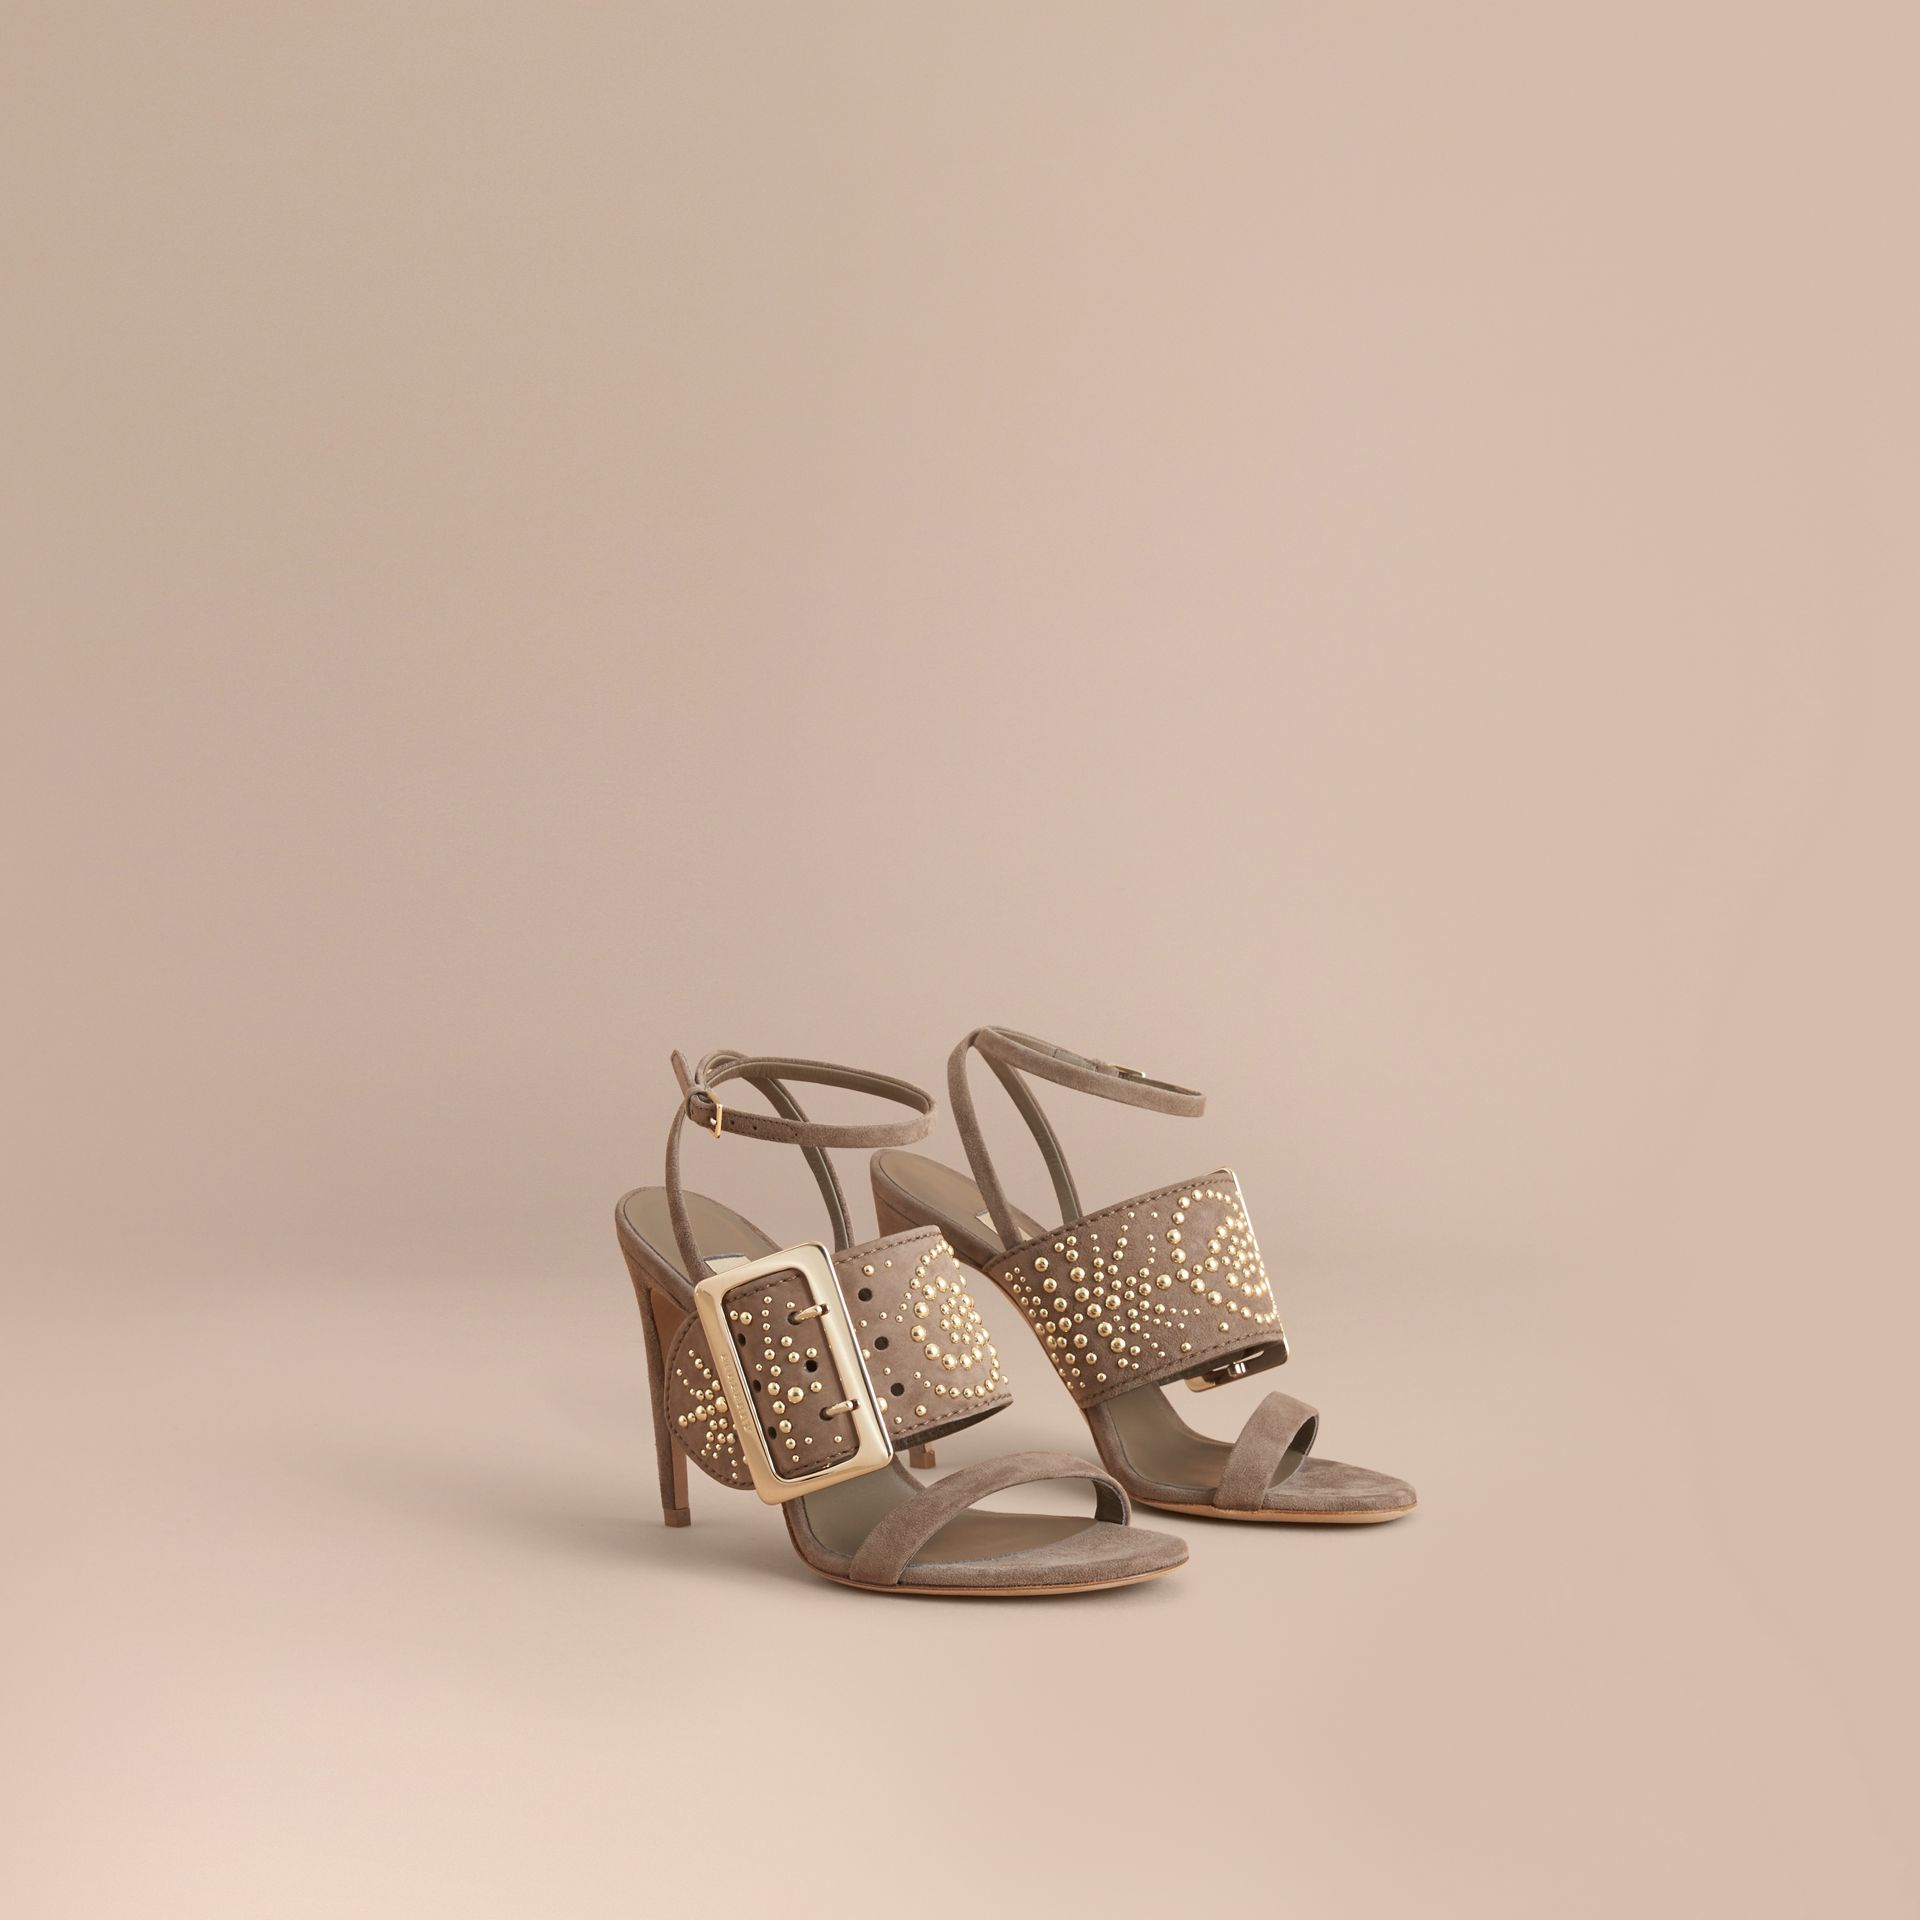 Riveted Suede Sandals with Buckle Detail in Dark Heather Melange - Women | Burberry - gallery image 1